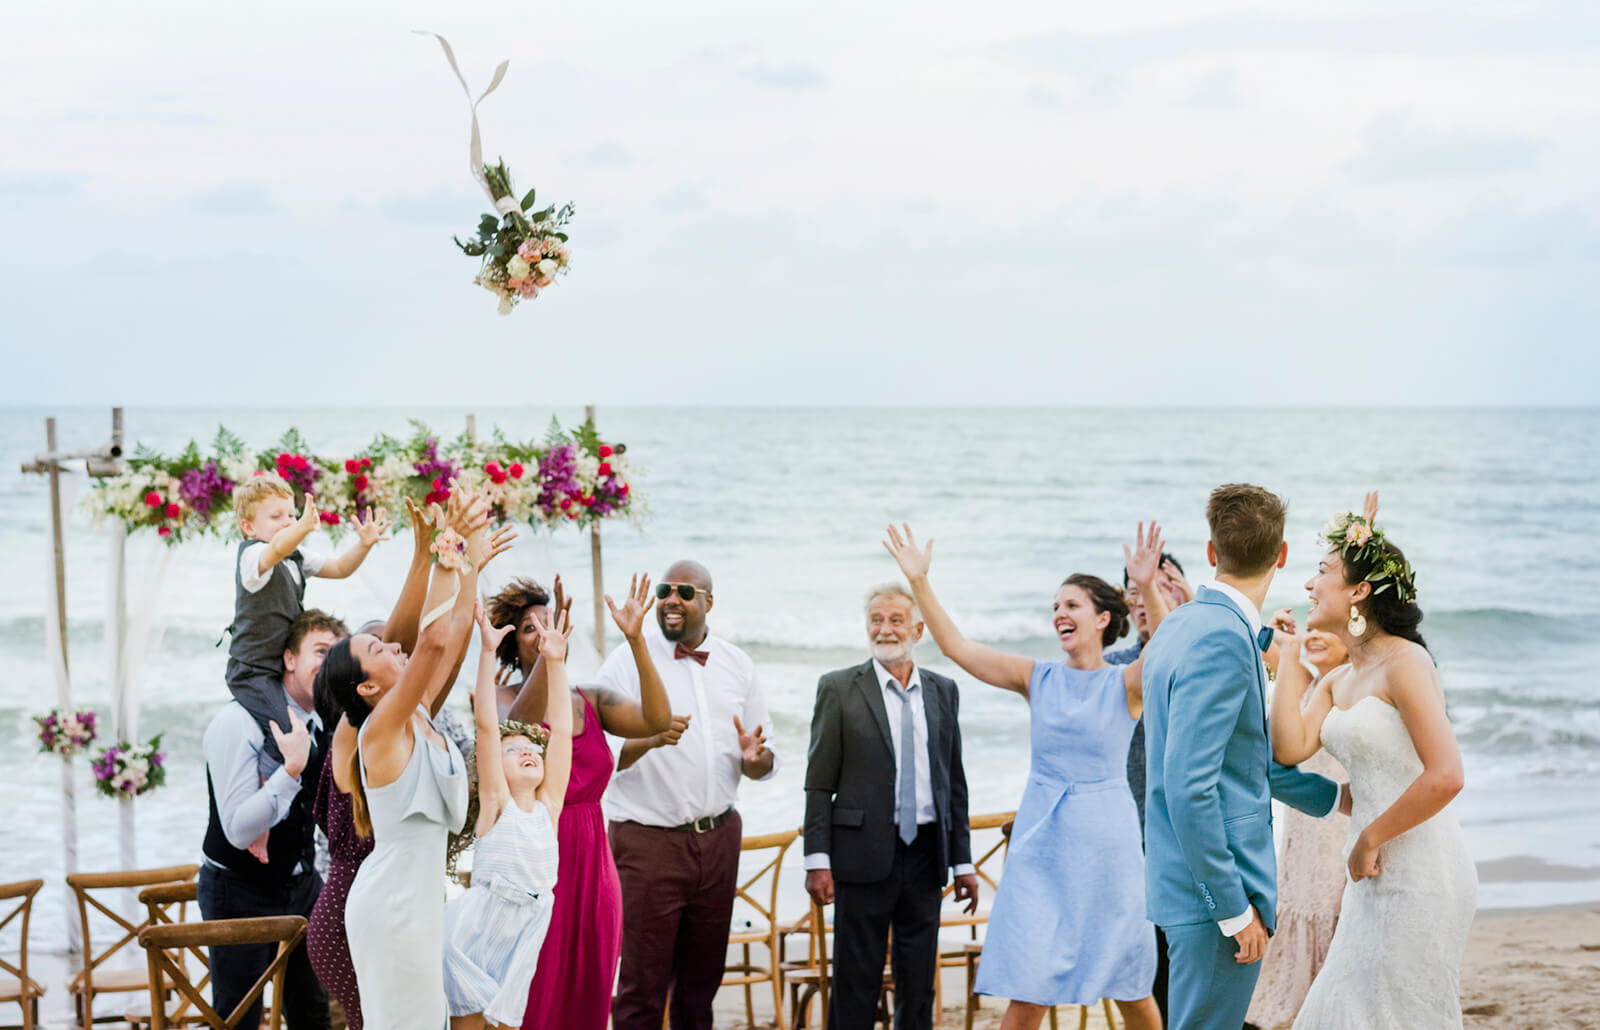 Ocean-Themed Weddings | LoveToKnow